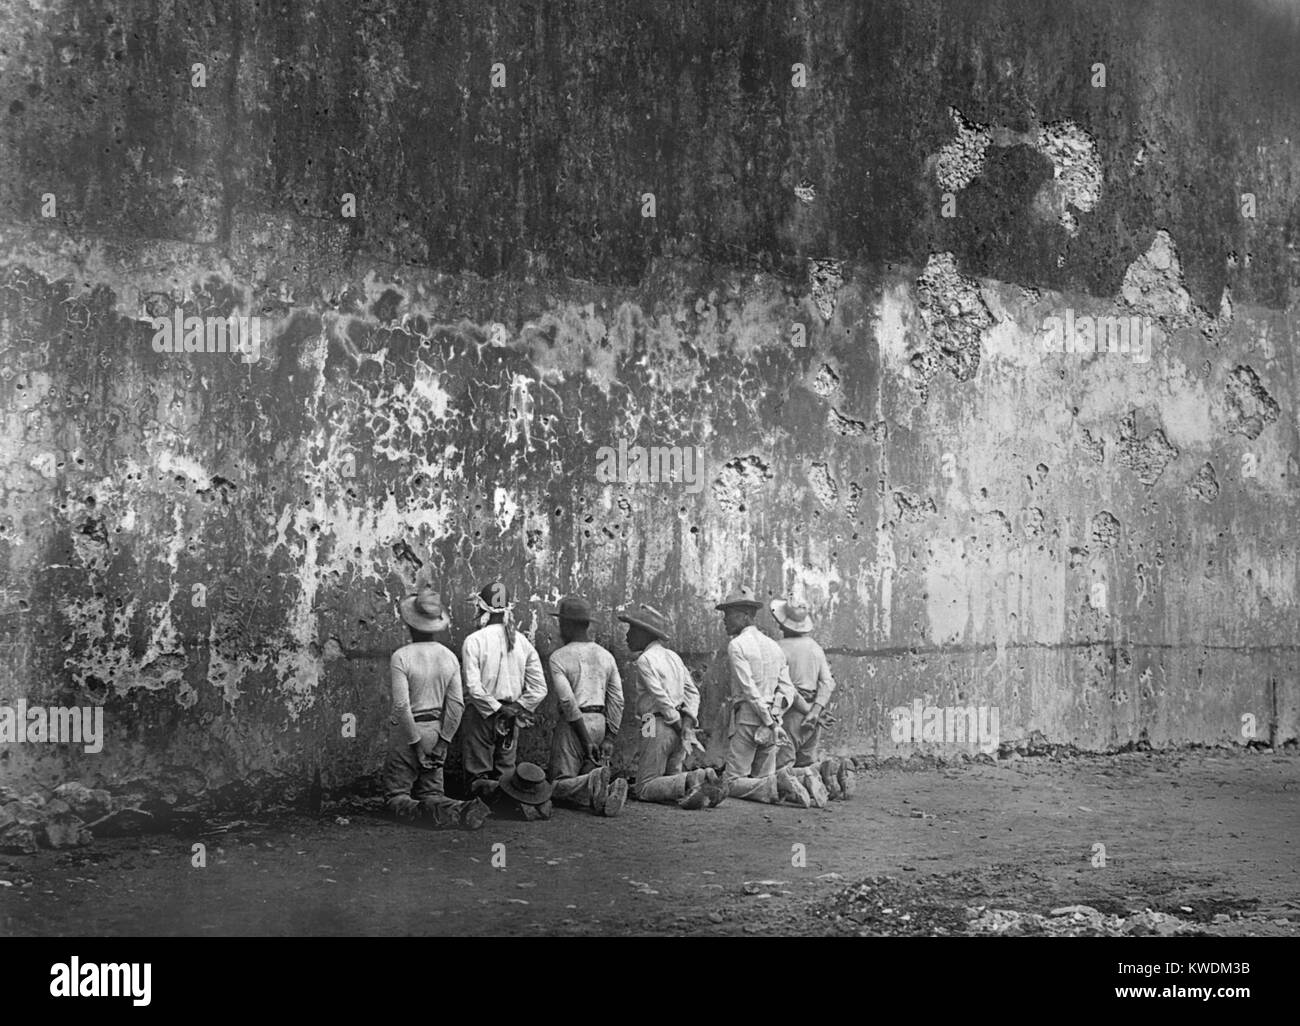 Execution scene at the arsenal in Santiago, Cuba. Photo taken by E.C. Rost of US Army, ca. 1899 (BSLOC_2017_10_5) - Stock Image